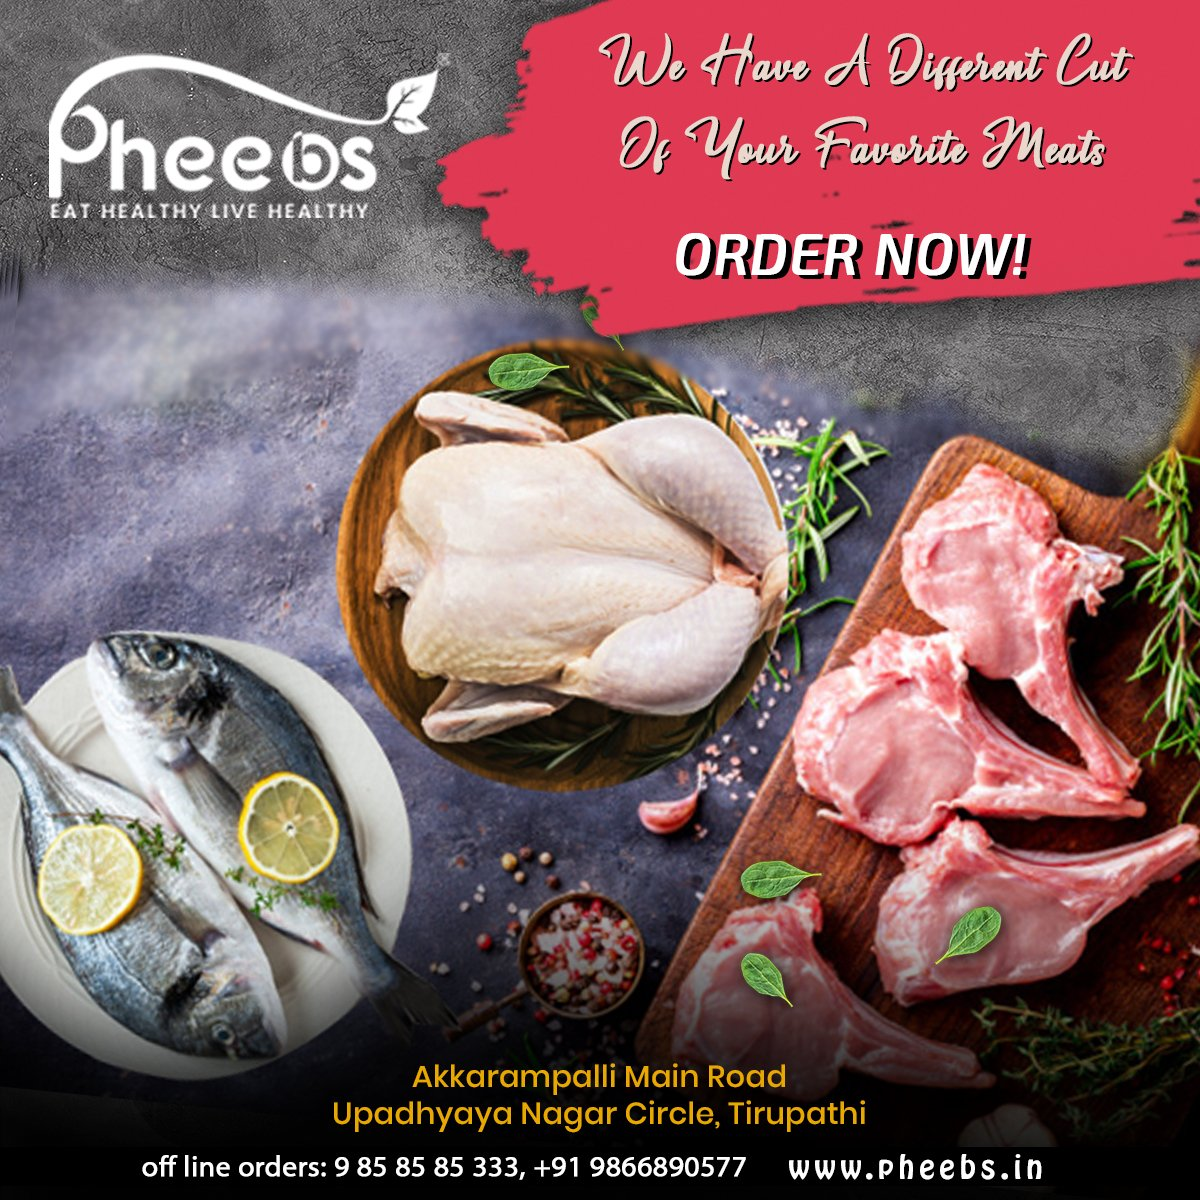 @PheebsMeat assure quality check and well maintained hygienic conditions through healthy processing systems. We maintain standards that safeguard the health and hygiene of our customers.  #Healthy #Meat #Pheebs  Order Now:  Call: +91 9858585333  Visit: https://pheebs.in/ pic.twitter.com/WfQupFNVKm